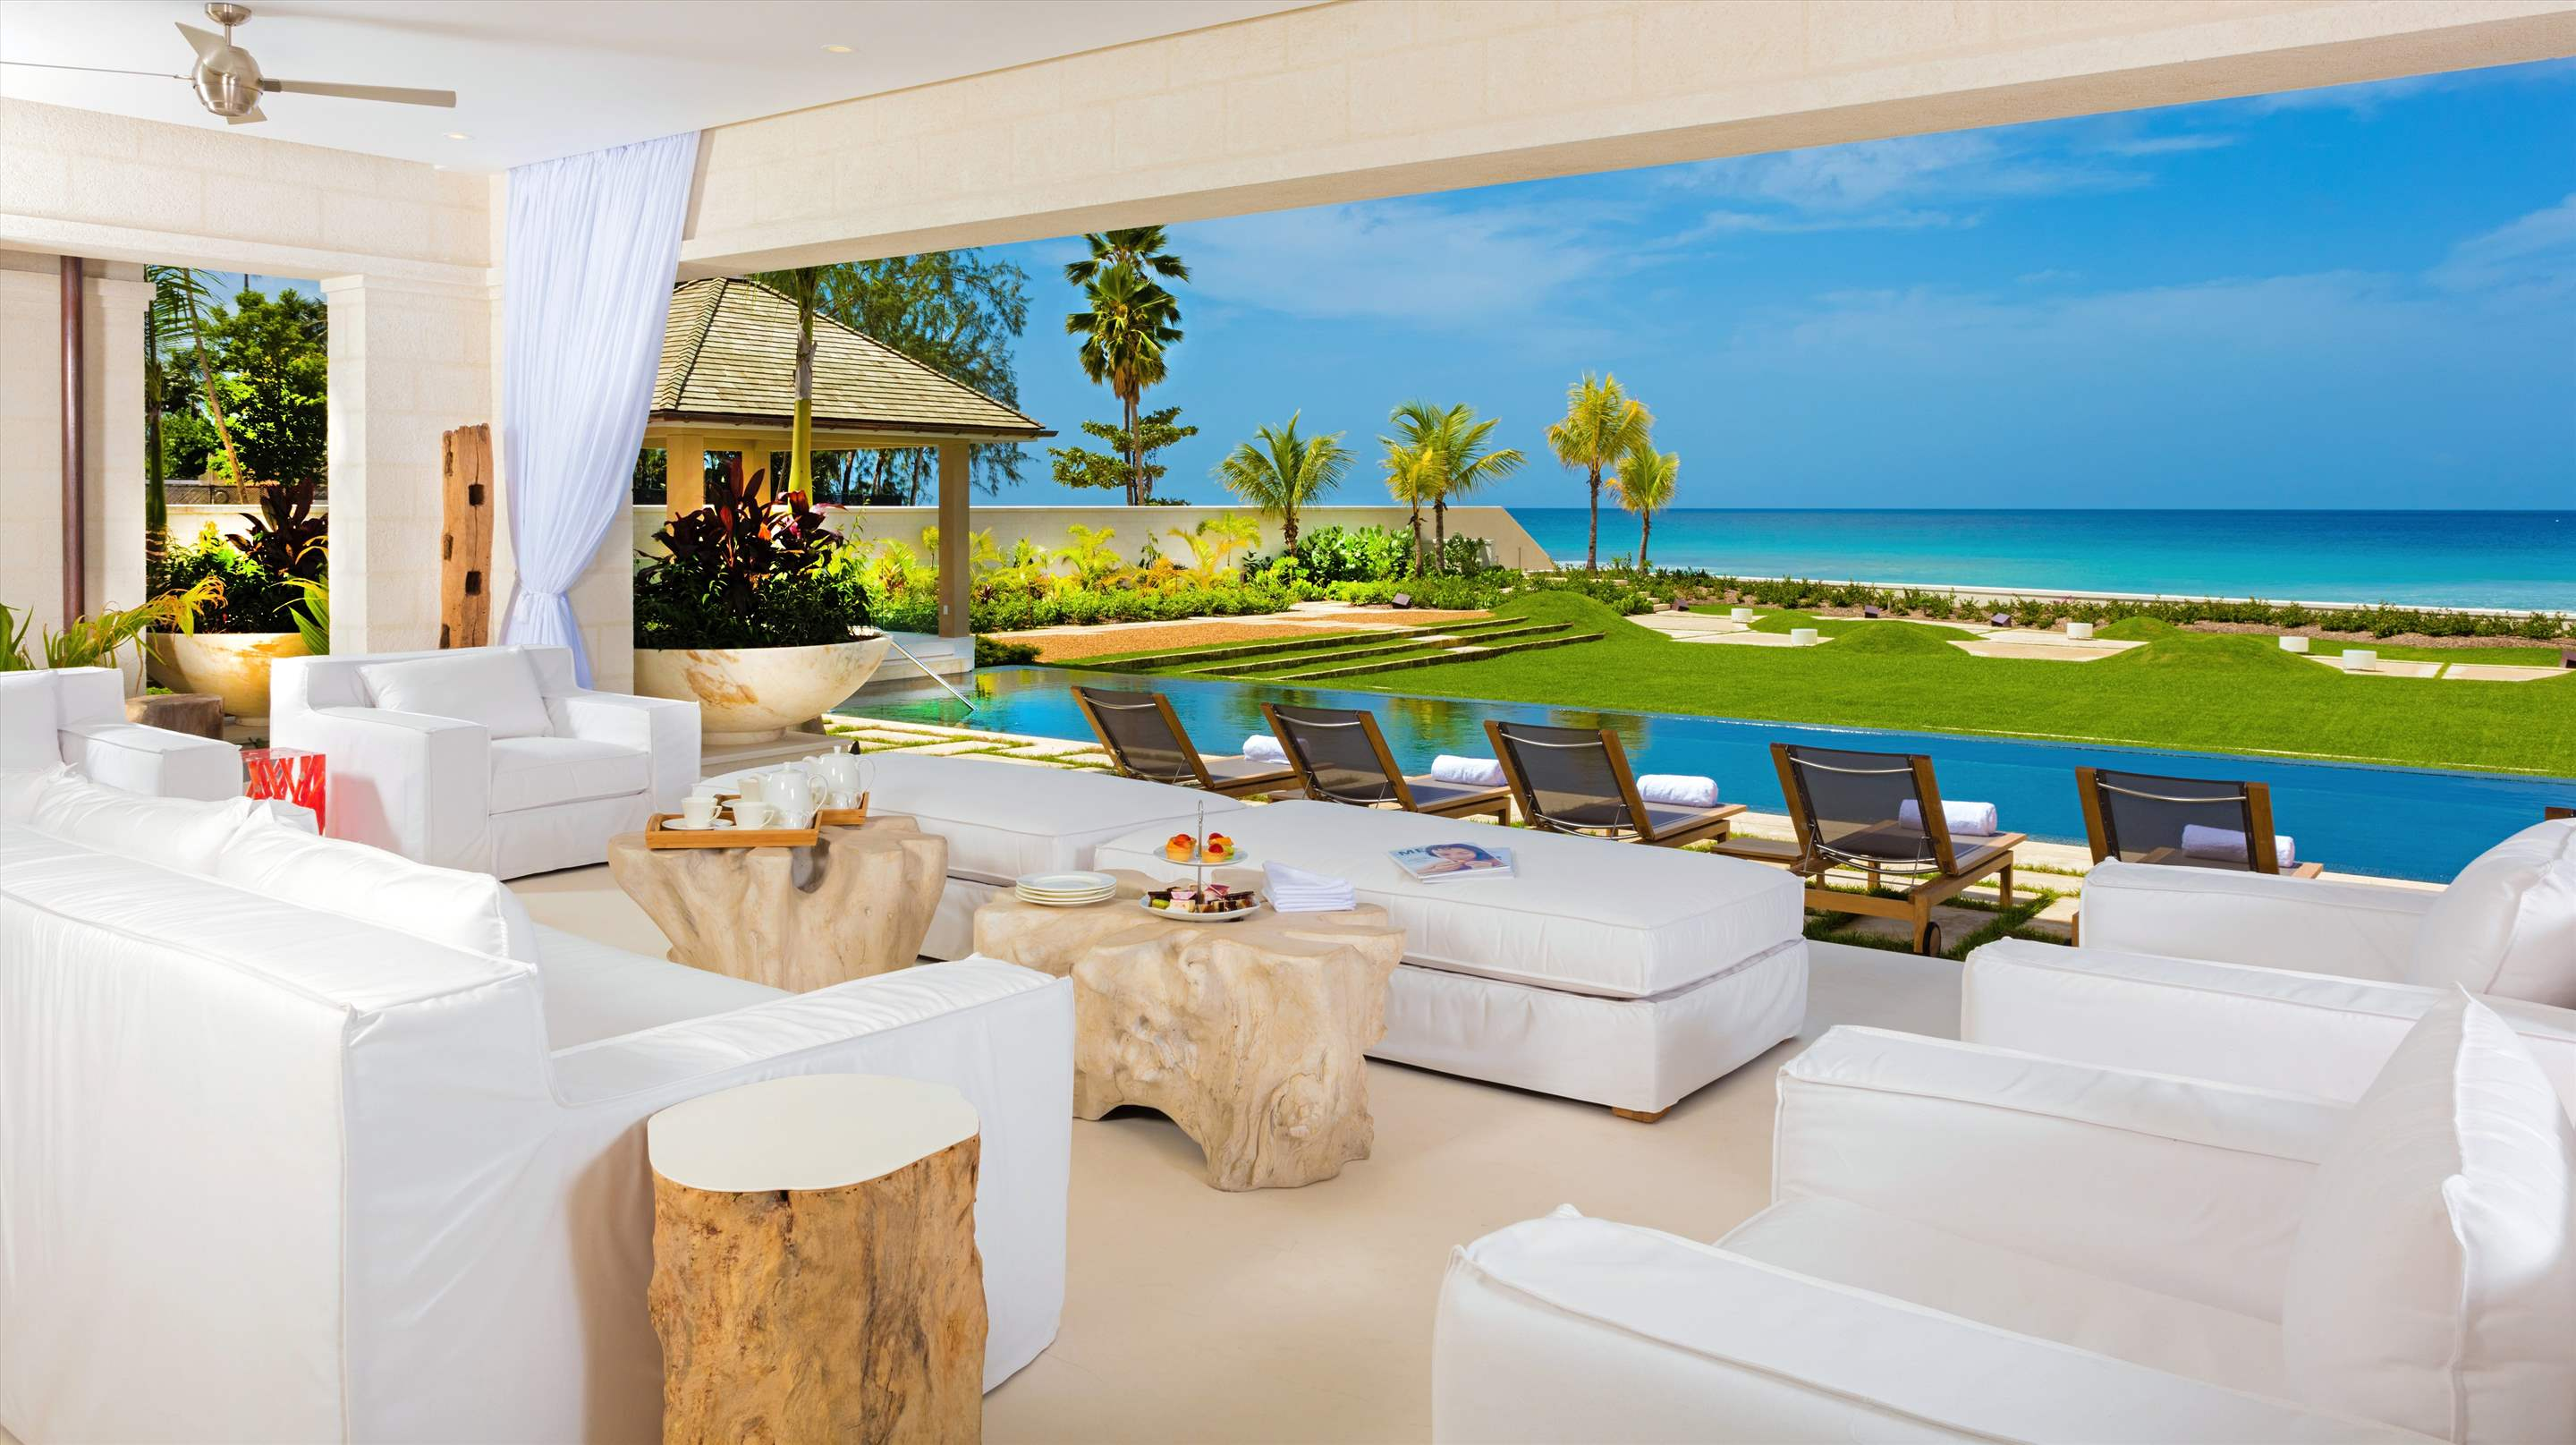 Godings Beach House, 5 bedroom villa in St. James & West Coast, Barbados Photo #1